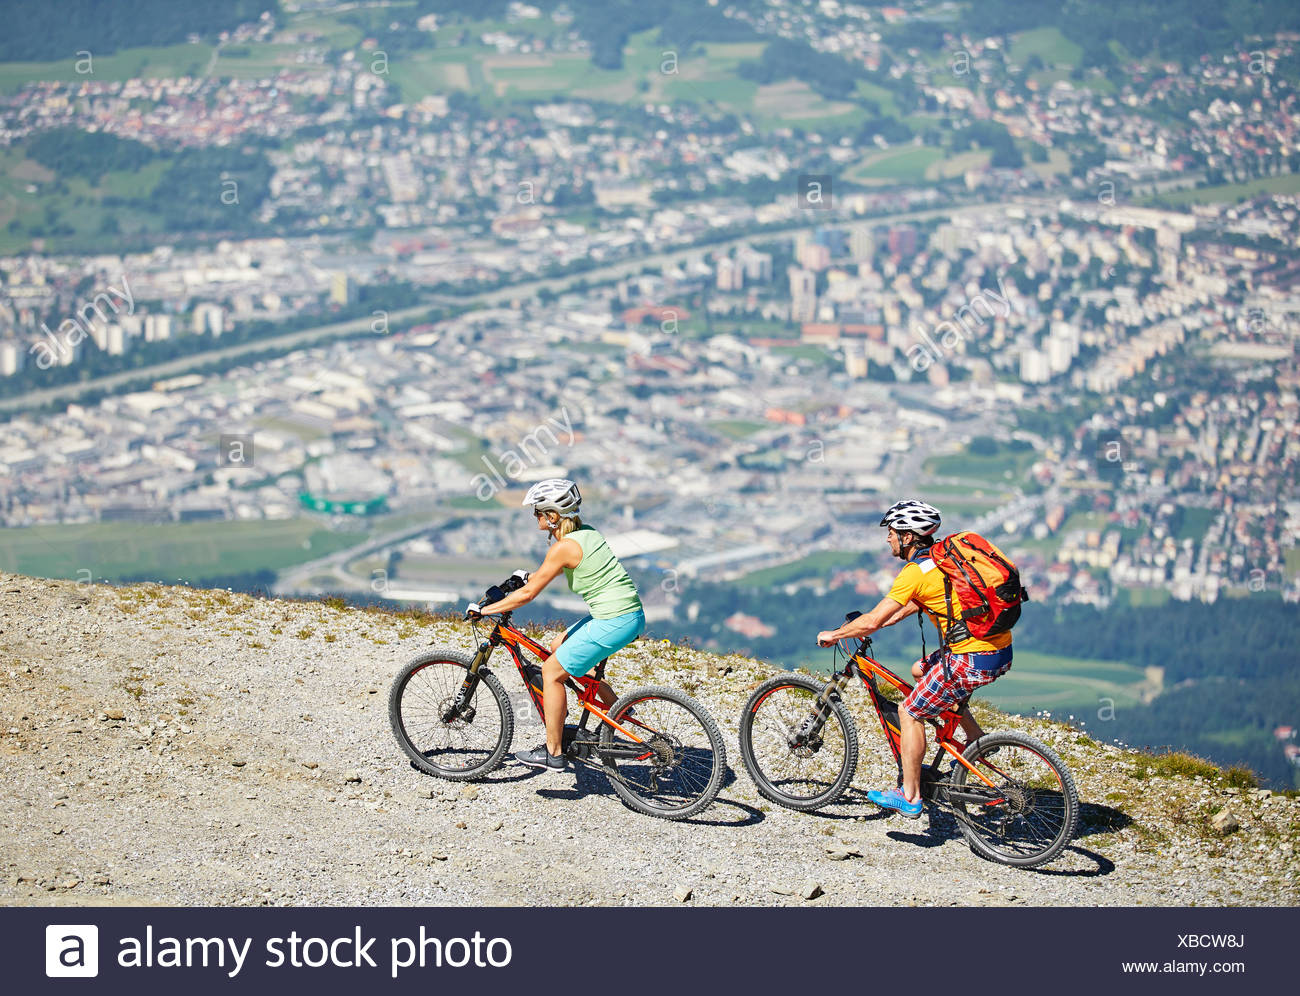 Man 40-45 years and woman 35-40 years with helmets cycle with their mountain bikes, Zirbenweg, Patscherkofel, Innsbruck, Tyrol - Stock Image